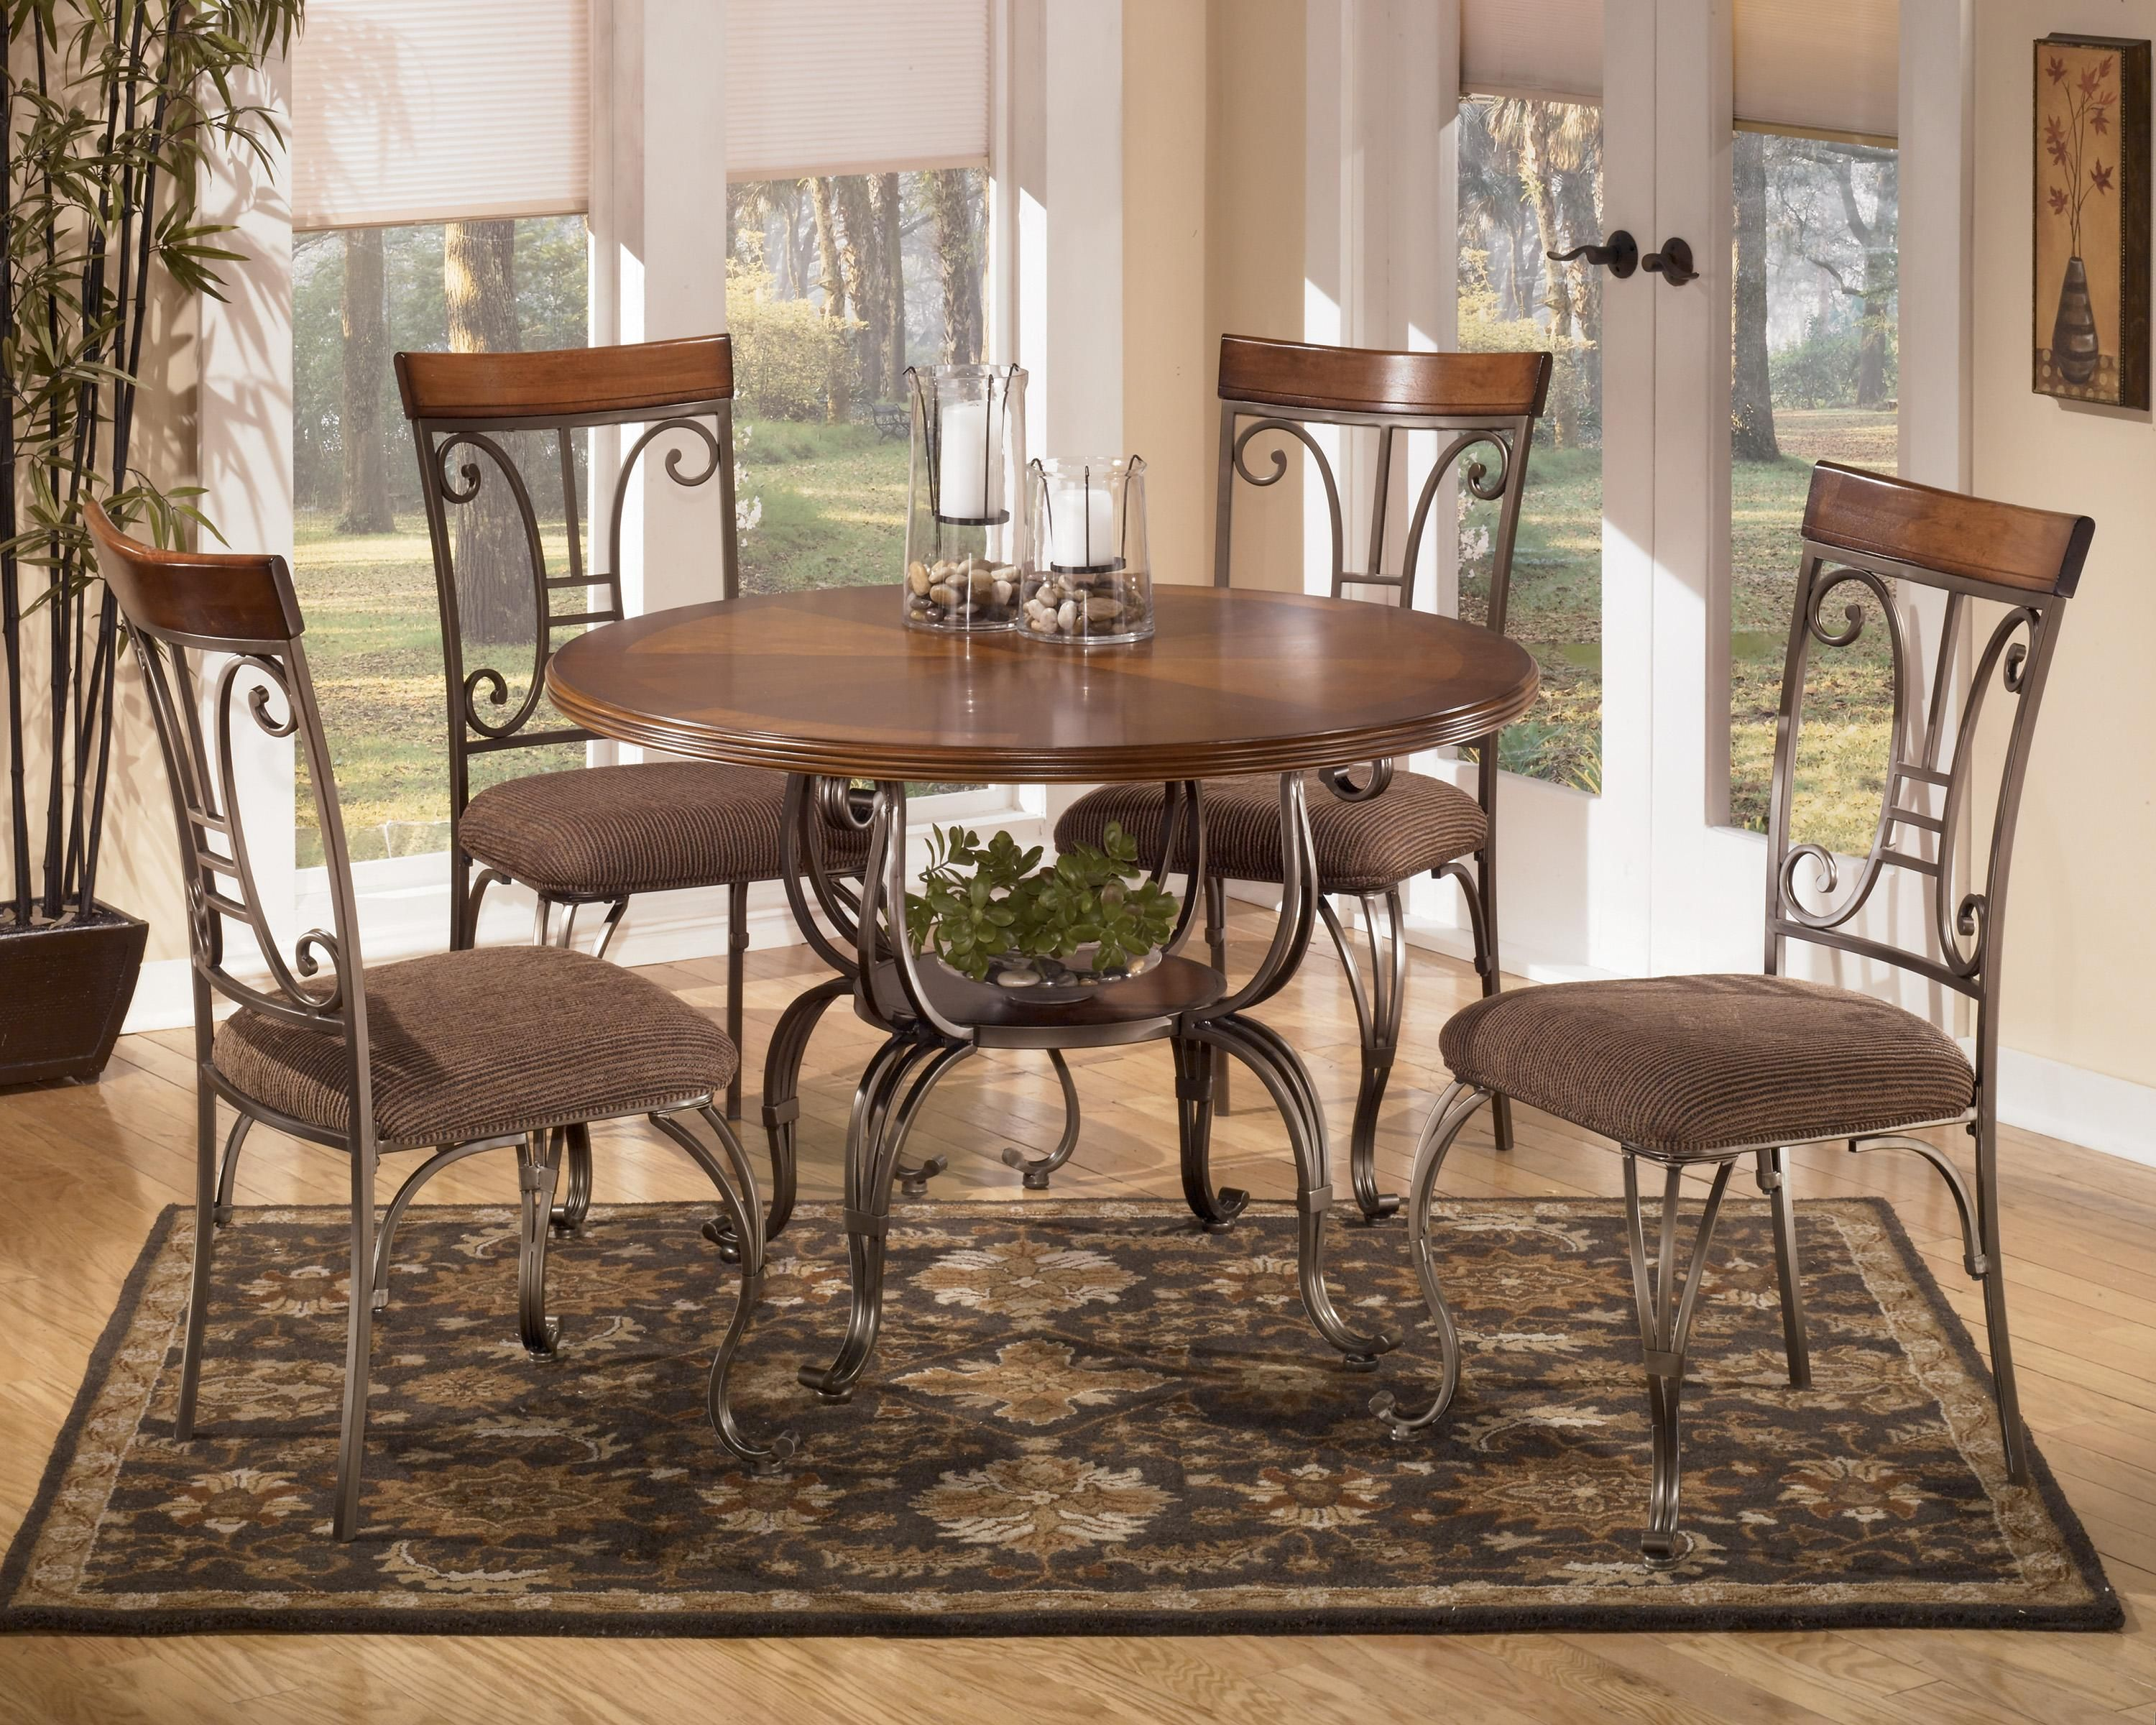 Plentywood 5 Piece Round Dining Table Set by Signature Design by